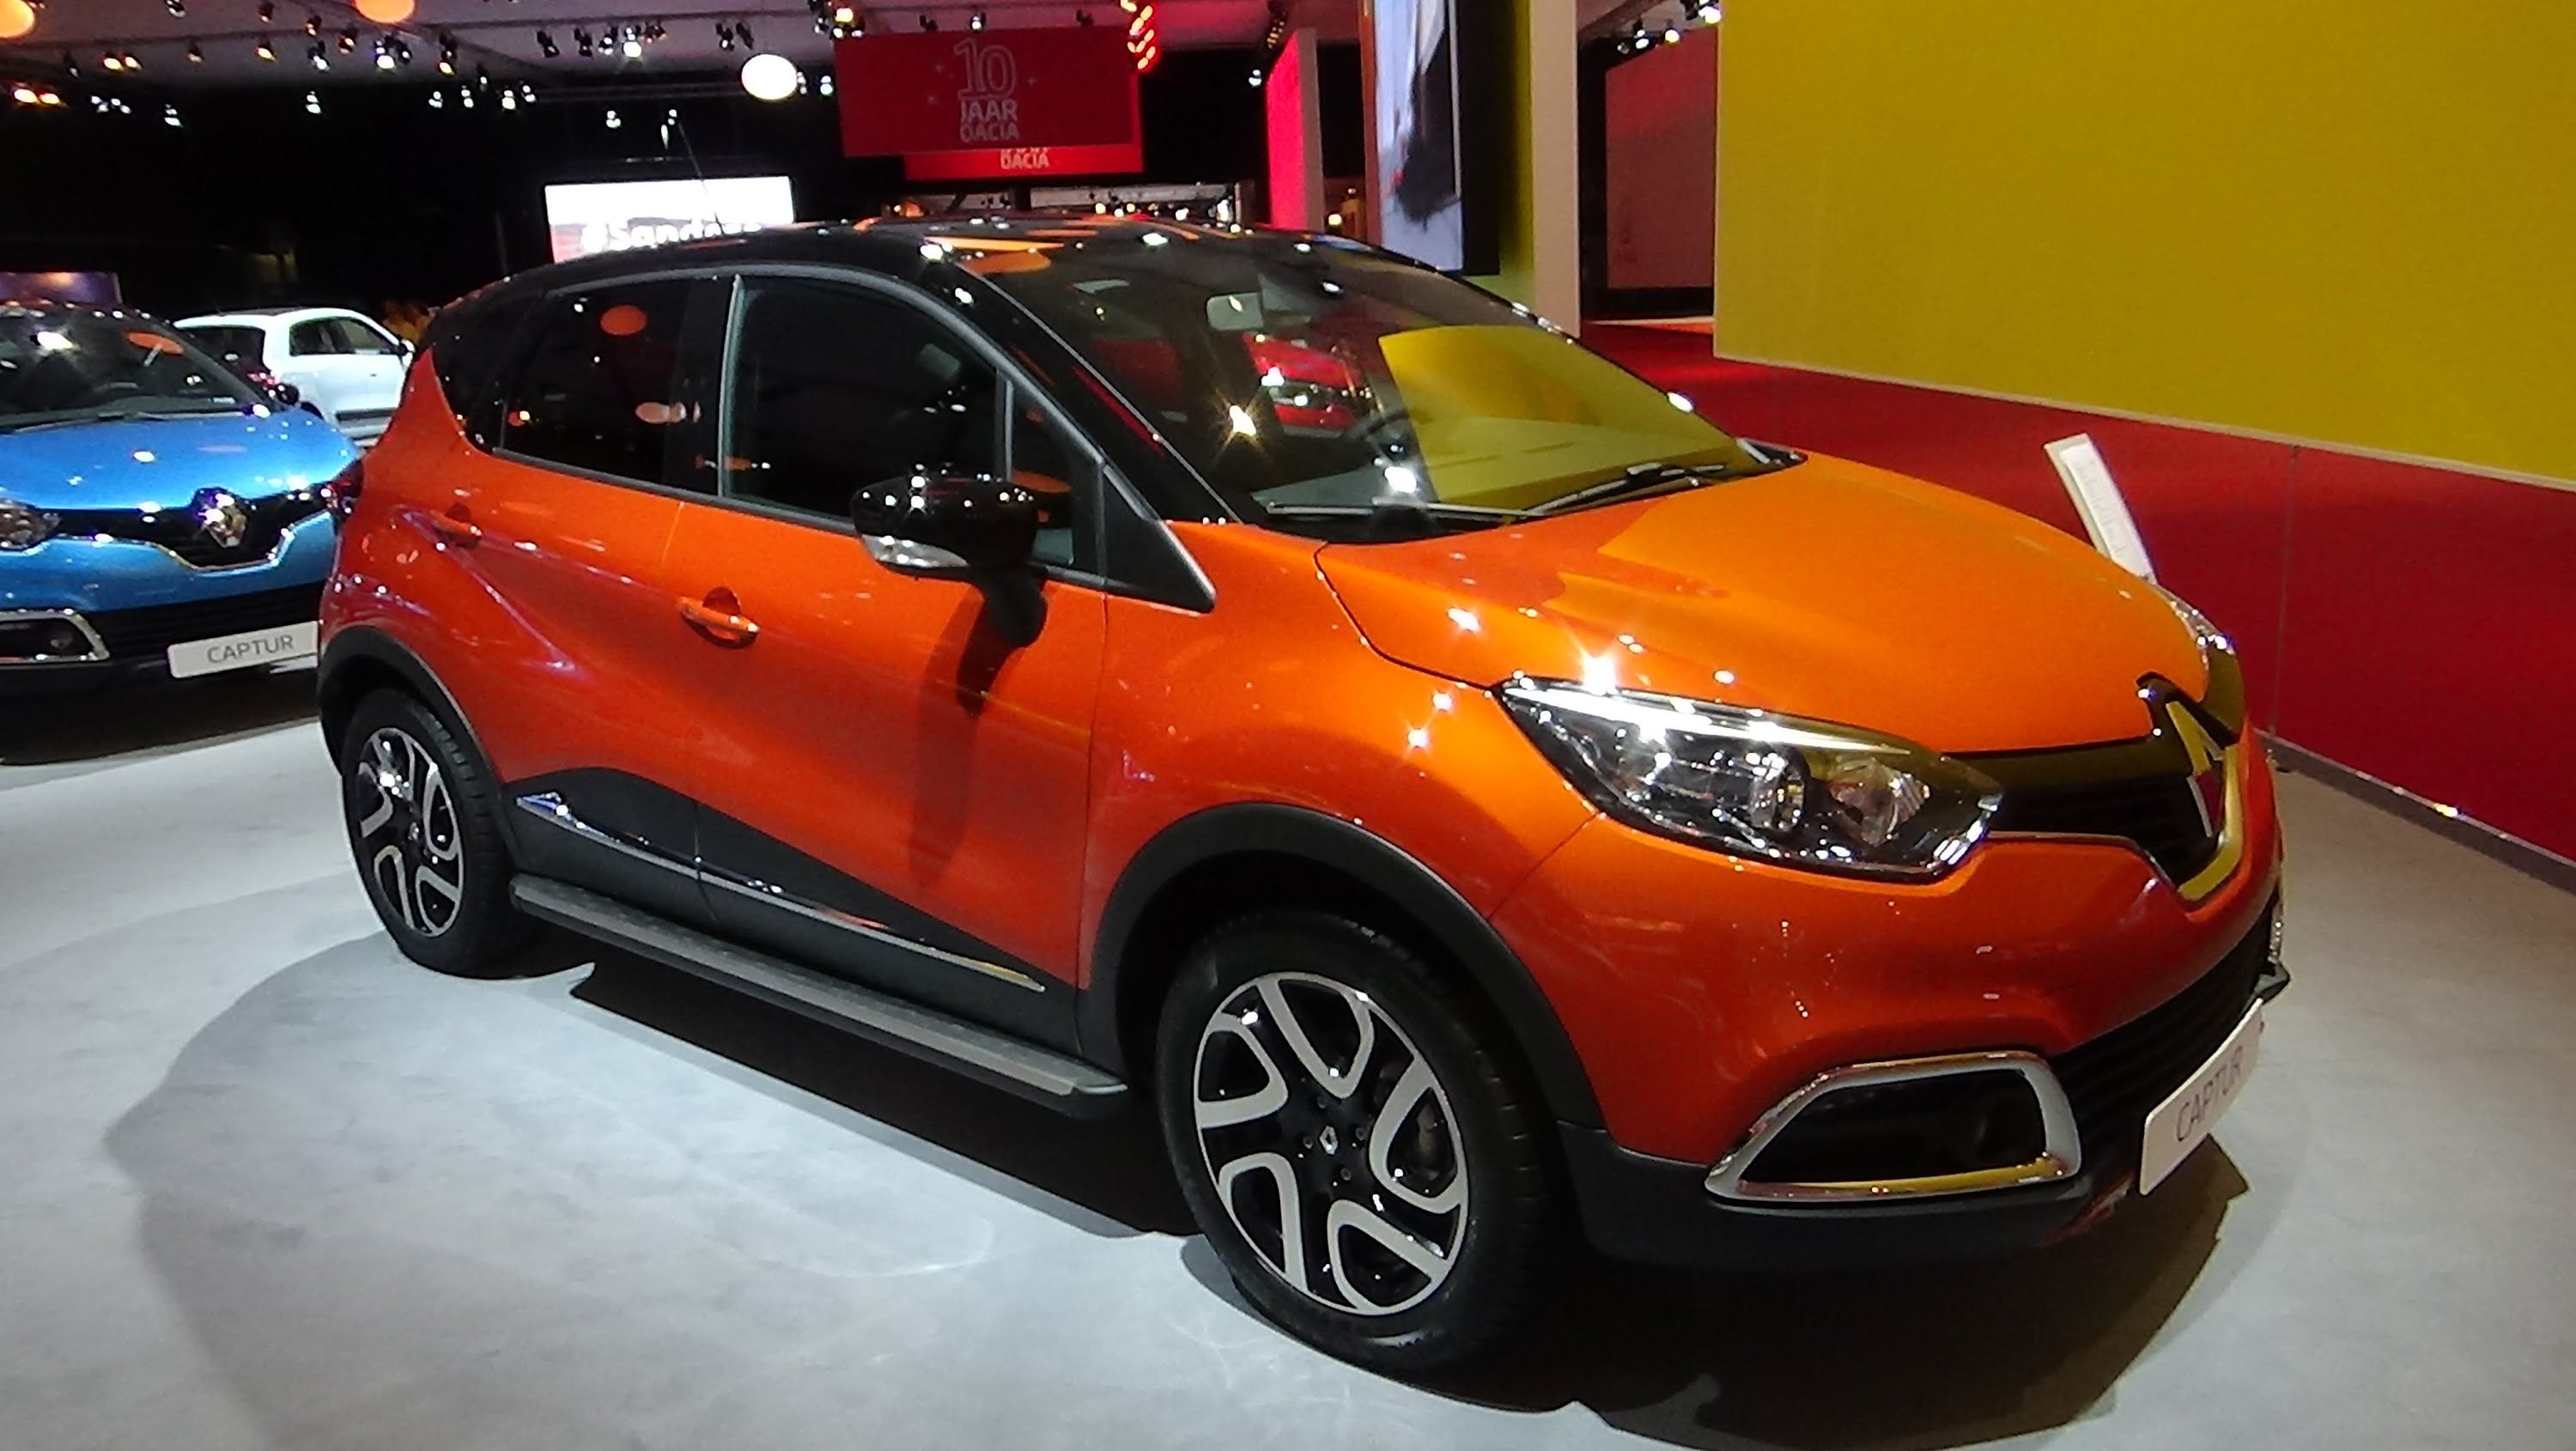 2017 Renault Captur launch soon in India